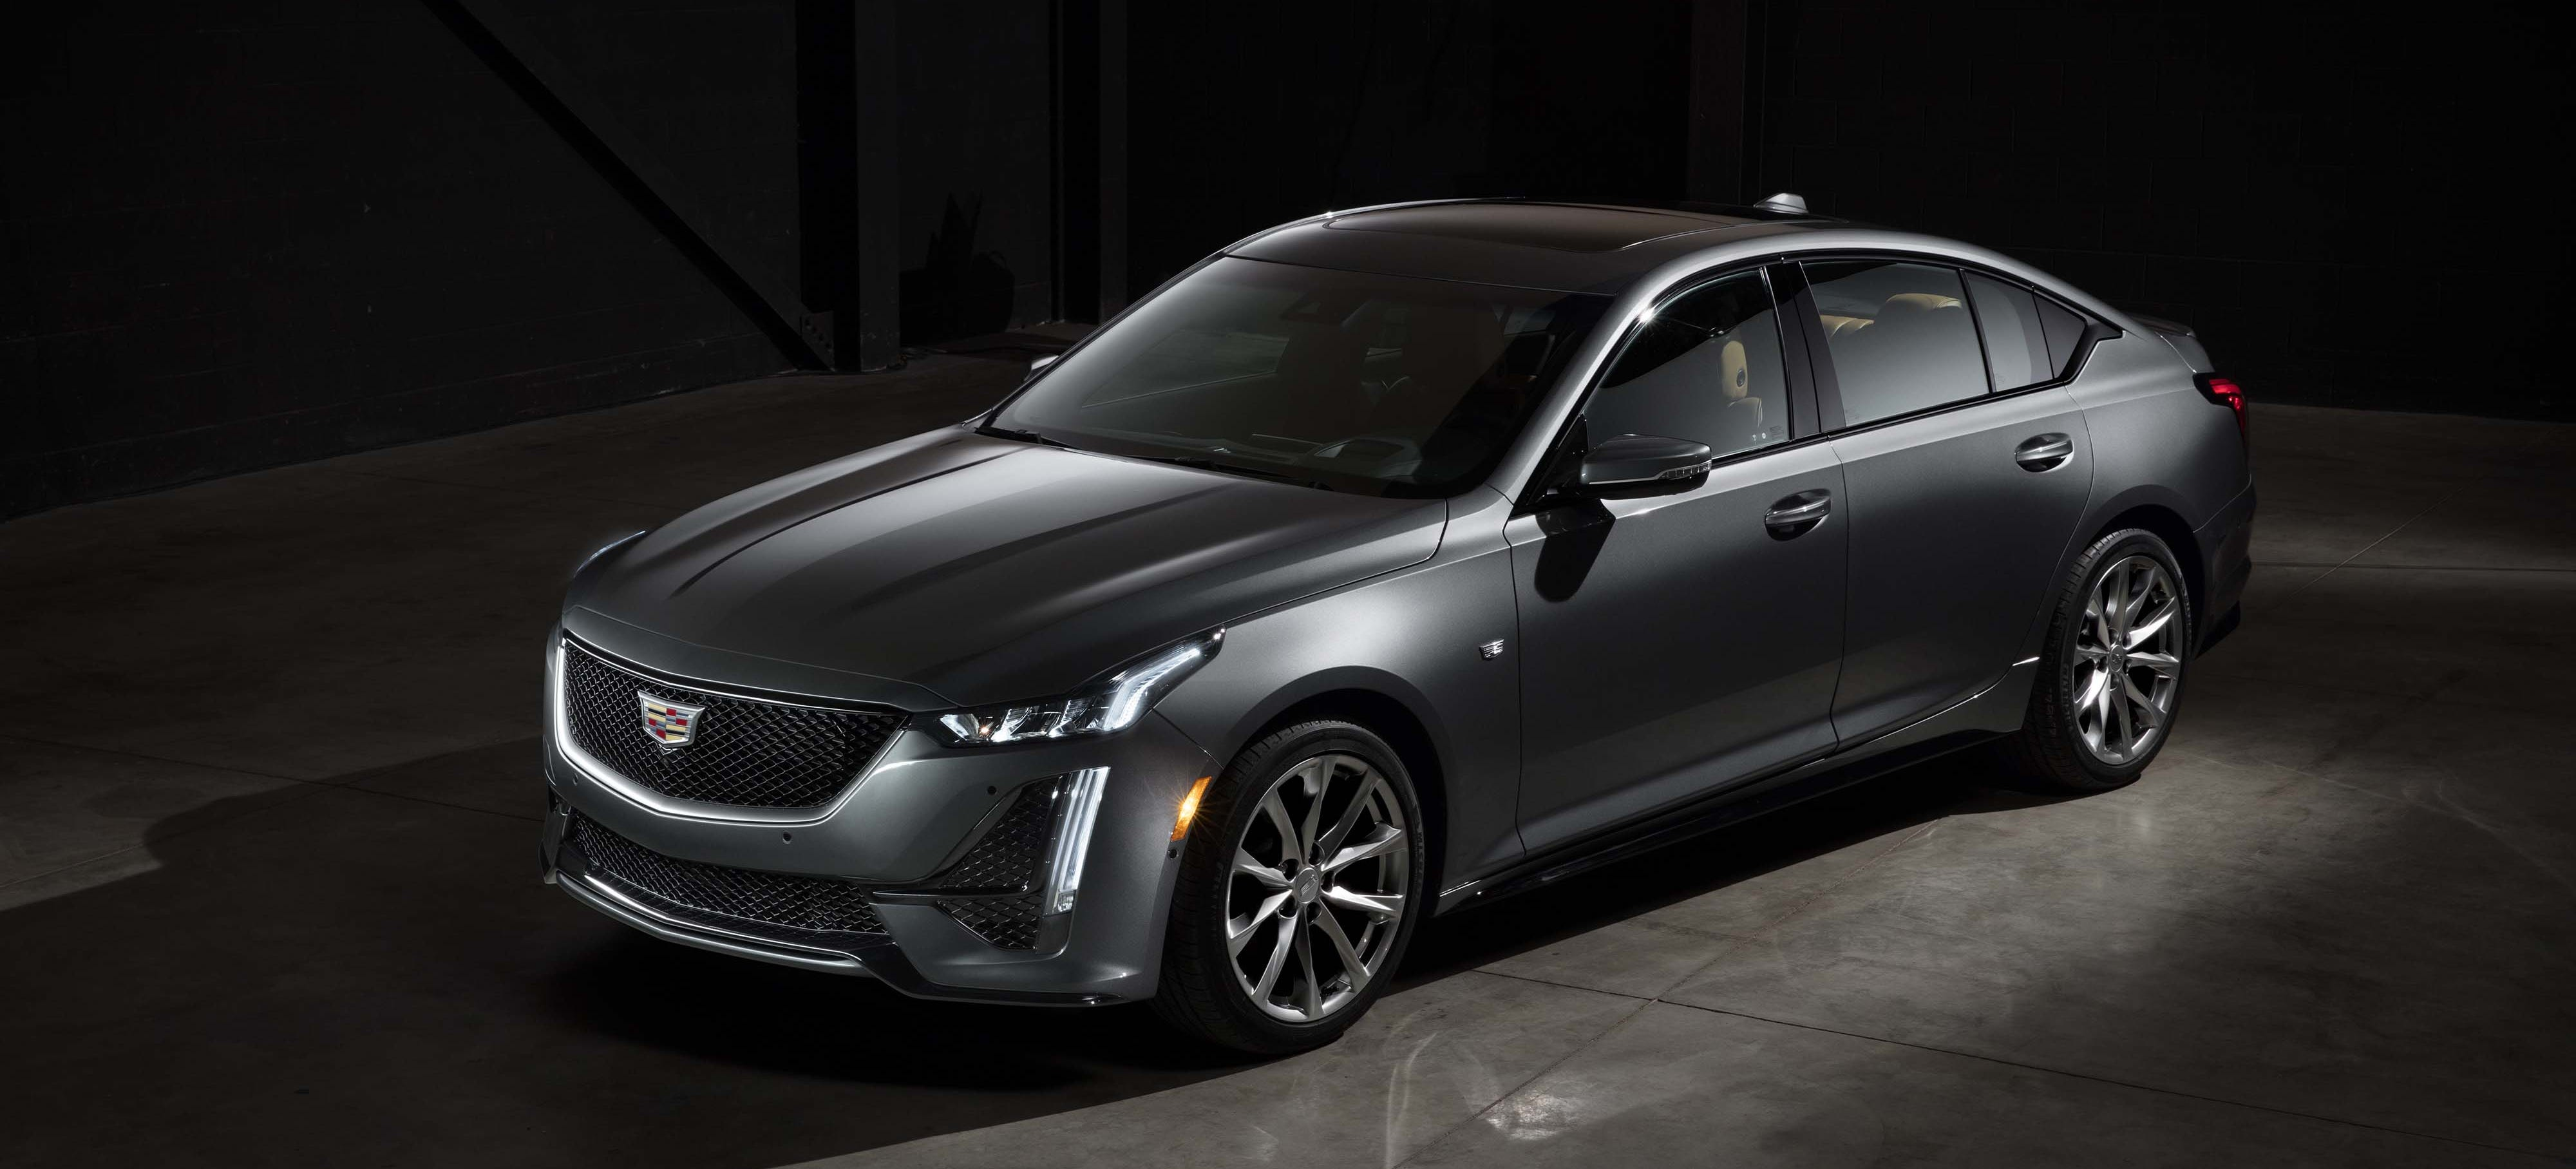 The 2020 Cadillac CT5 gets a new name (it formerly was the CTS) and skin.